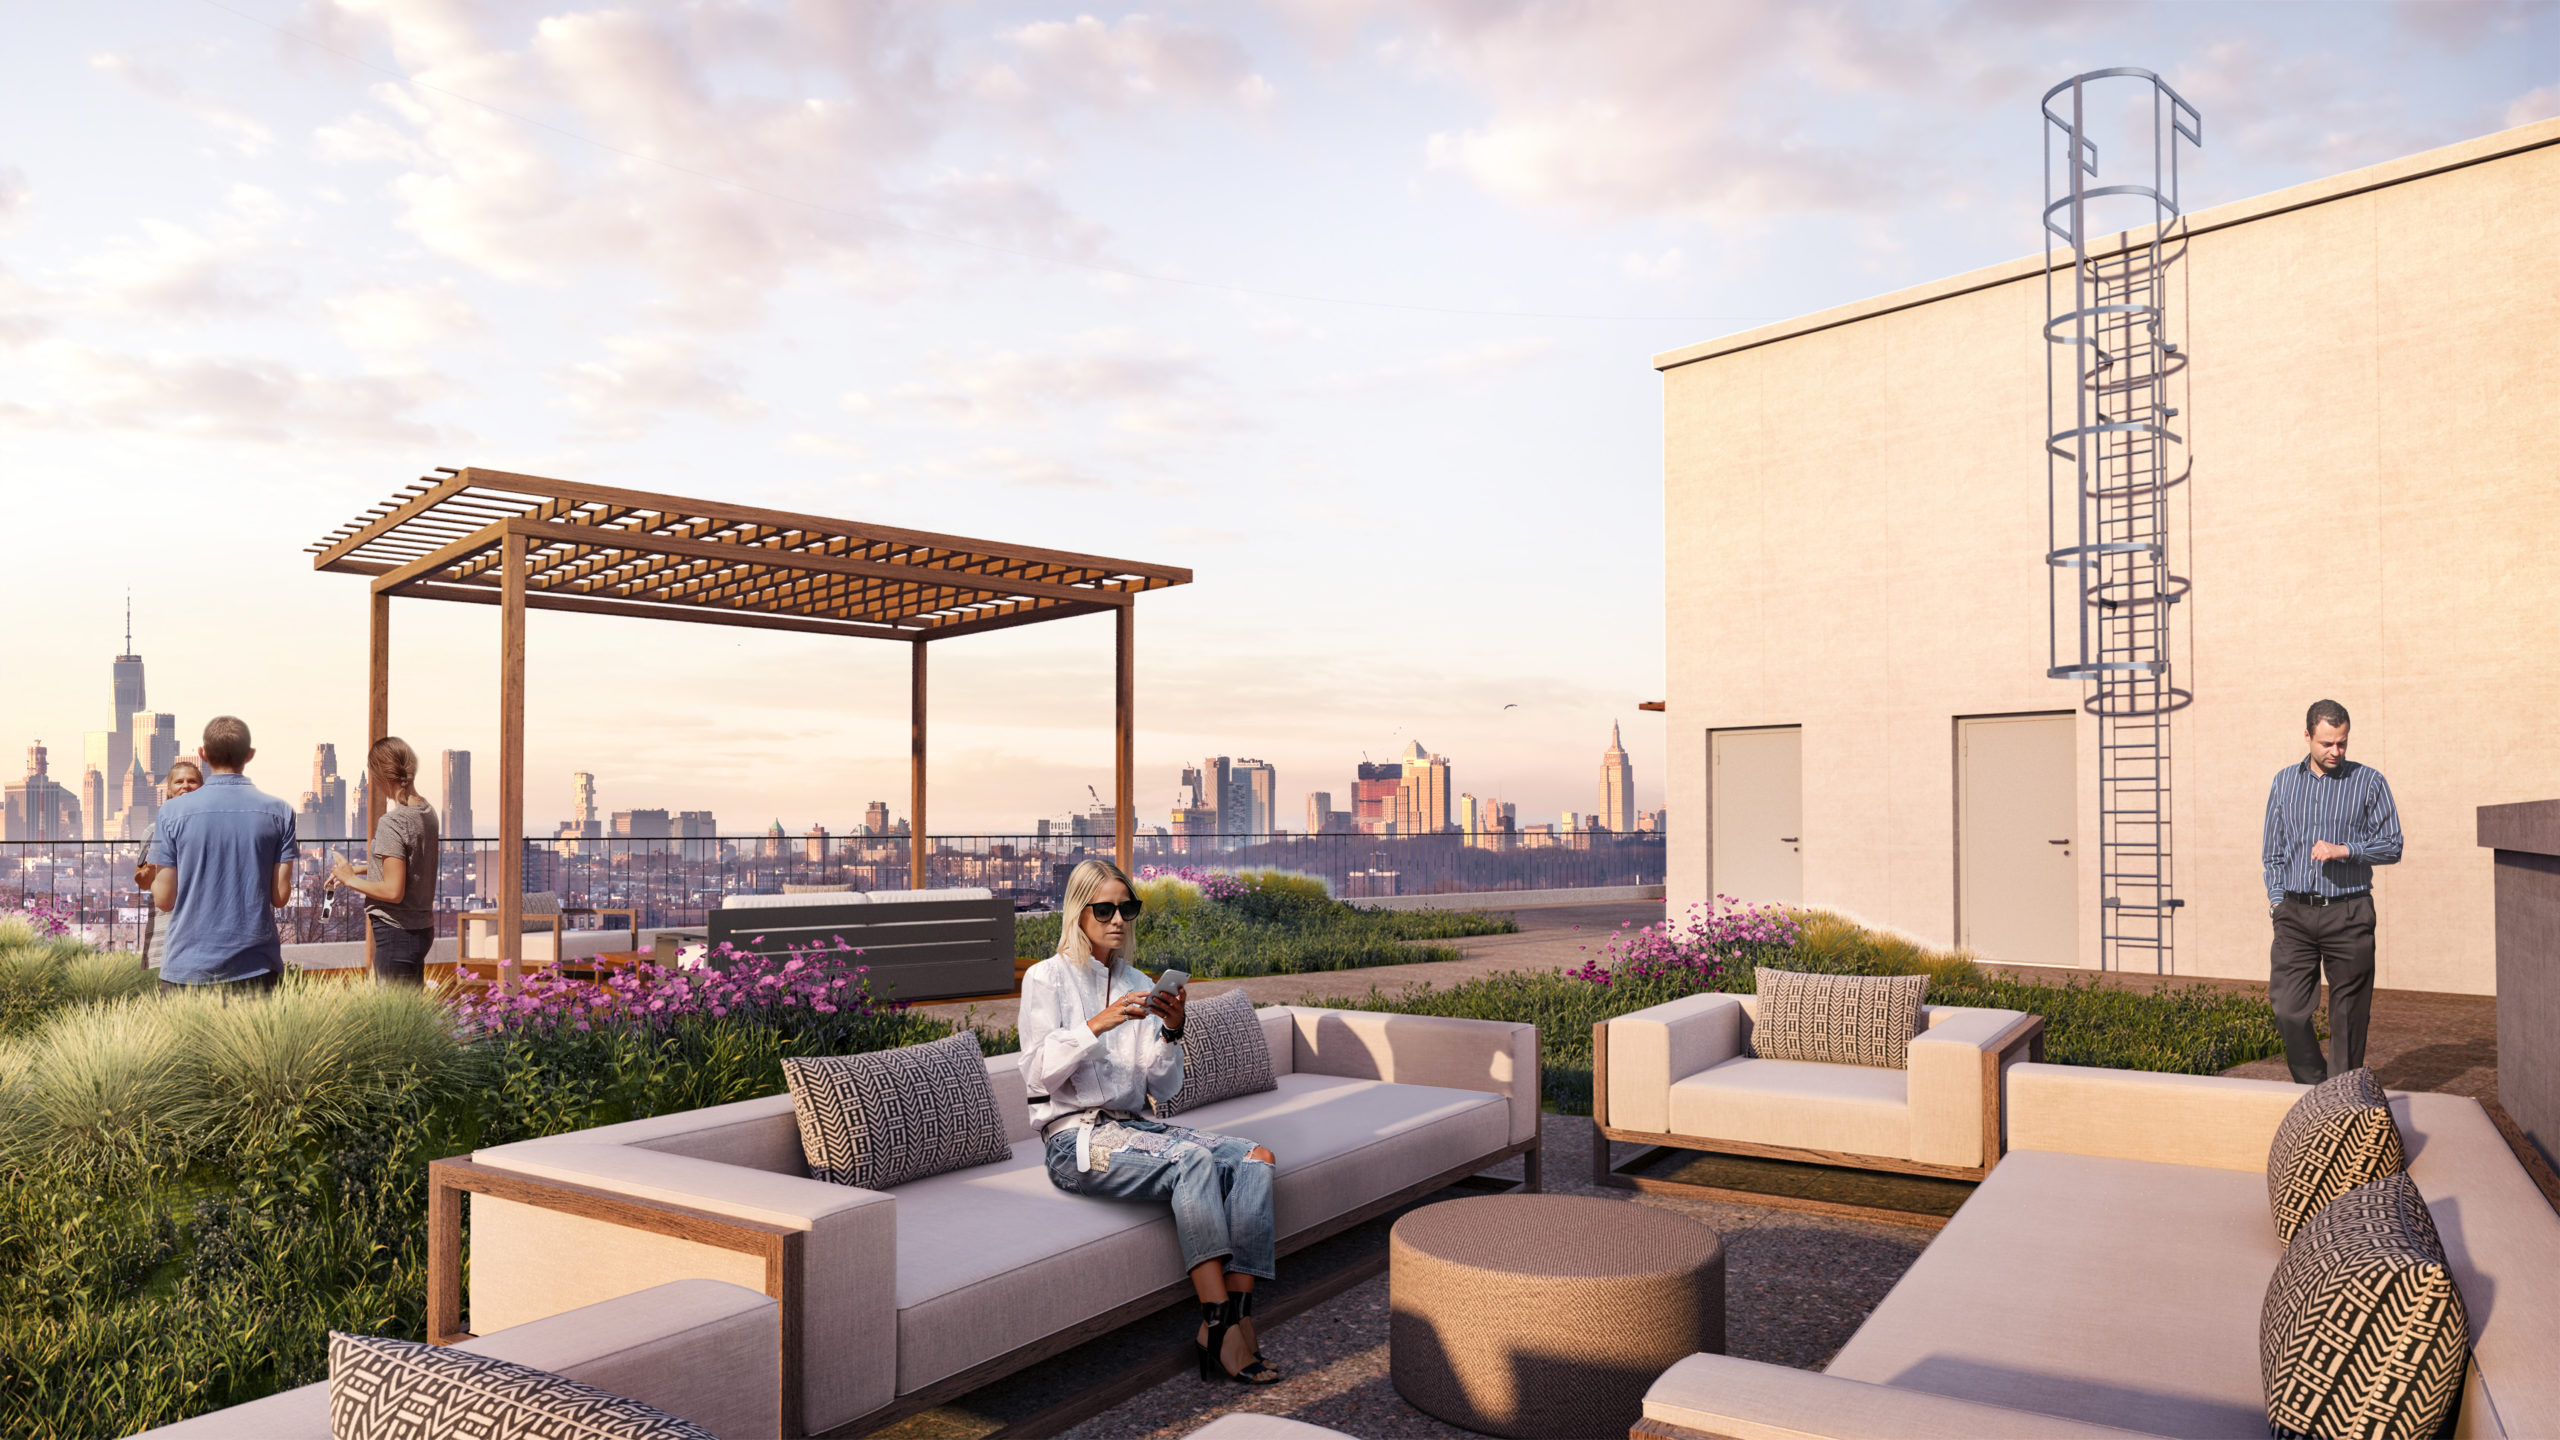 Rooftop patio with a lattice awning overlooking the city at the Vitagraph Brooklyn